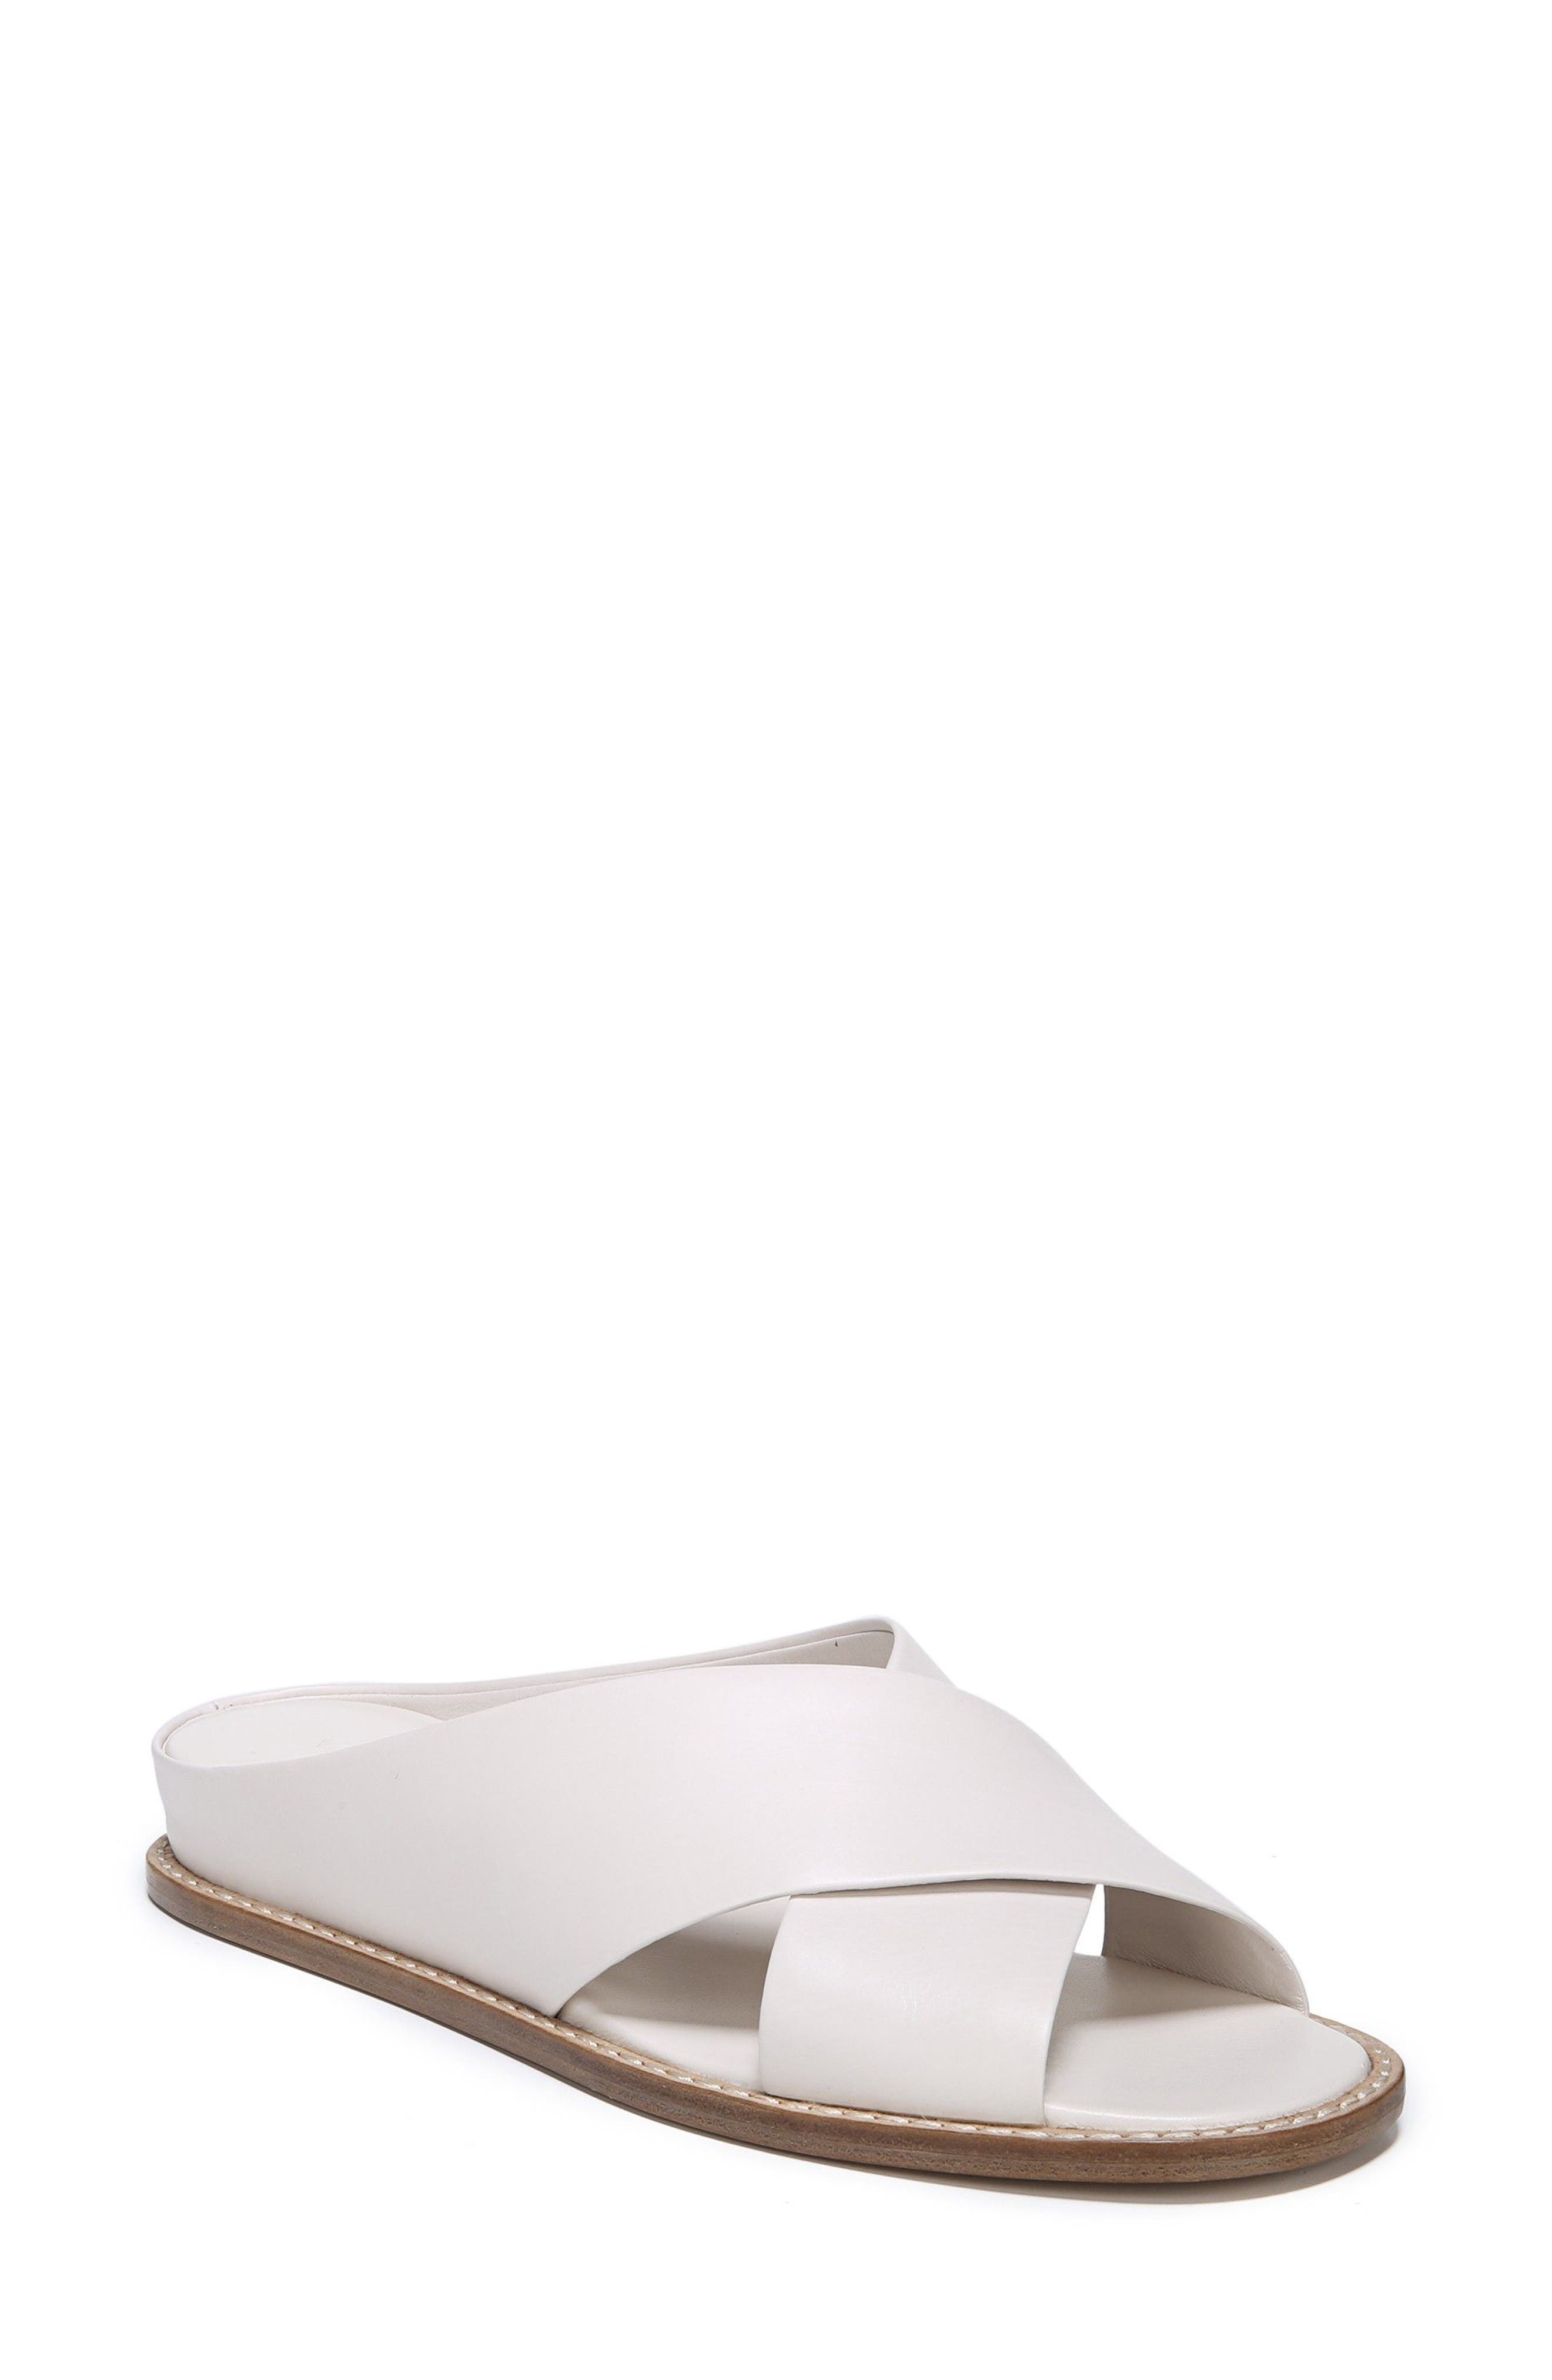 VINCE, Fairley Cross Strap Sandal, Main thumbnail 1, color, OFF WHITE LEATHER